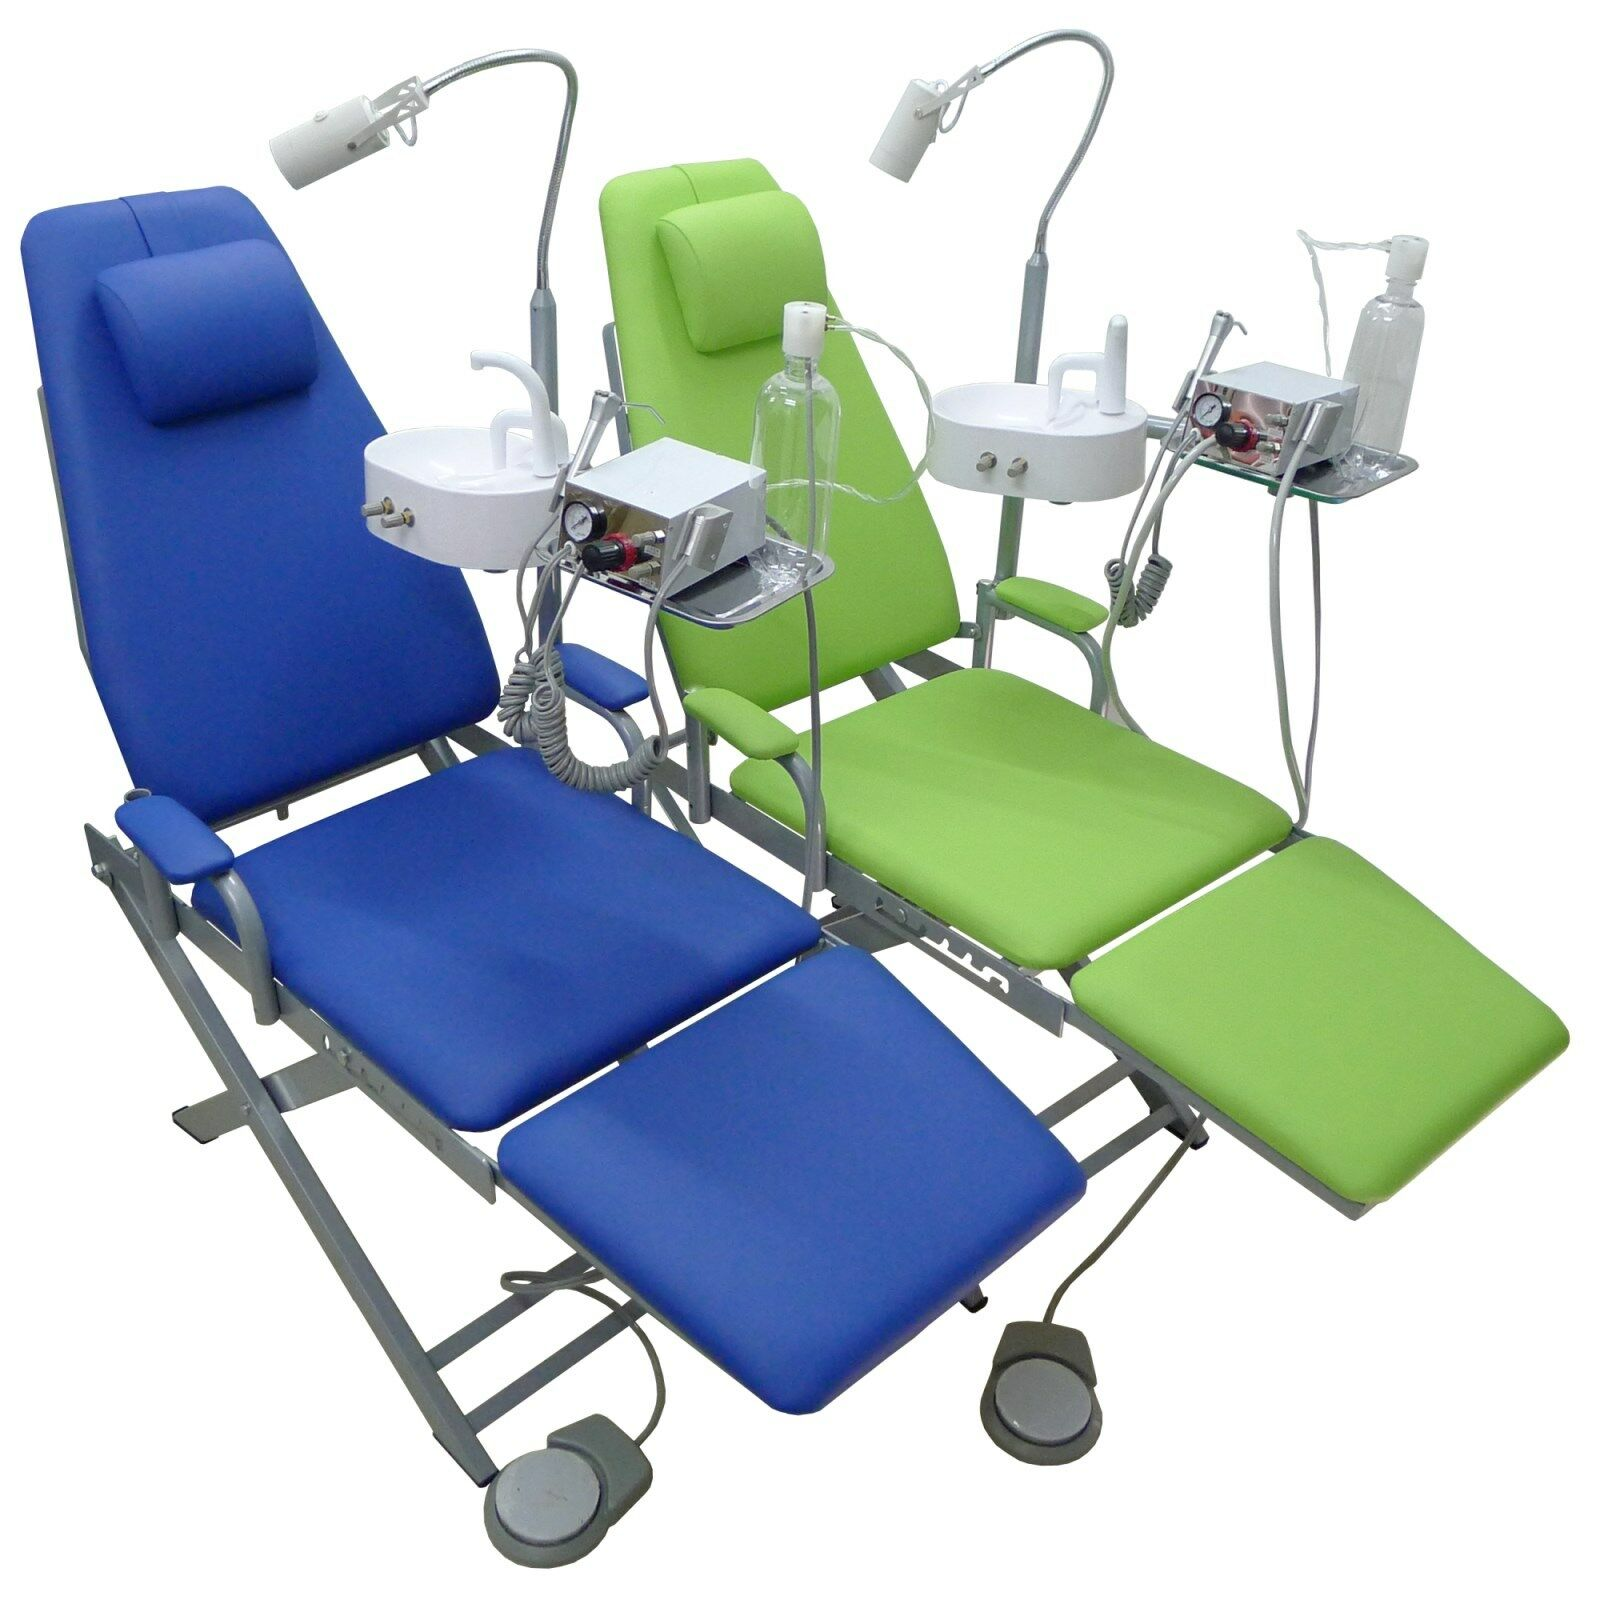 royal dental chair covers party supplies new updated mobile unit 43 turbine led